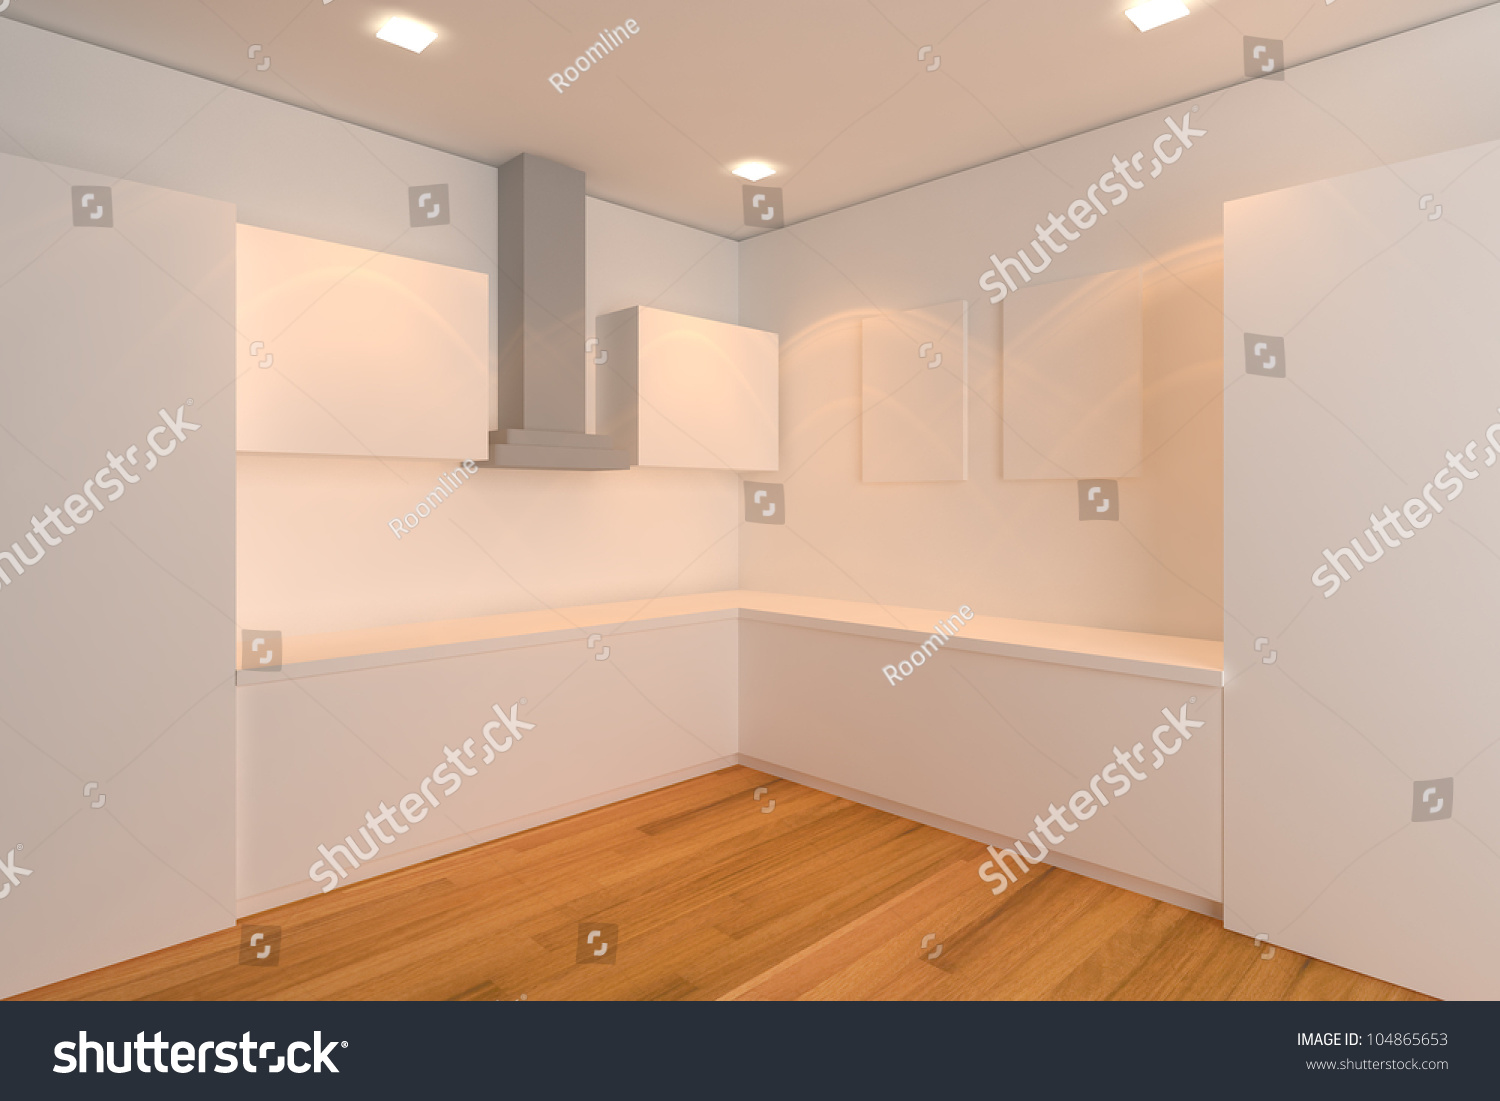 Empty Kitchen Wall Empty Interior Design For Kitchen Room With White Wall Stock